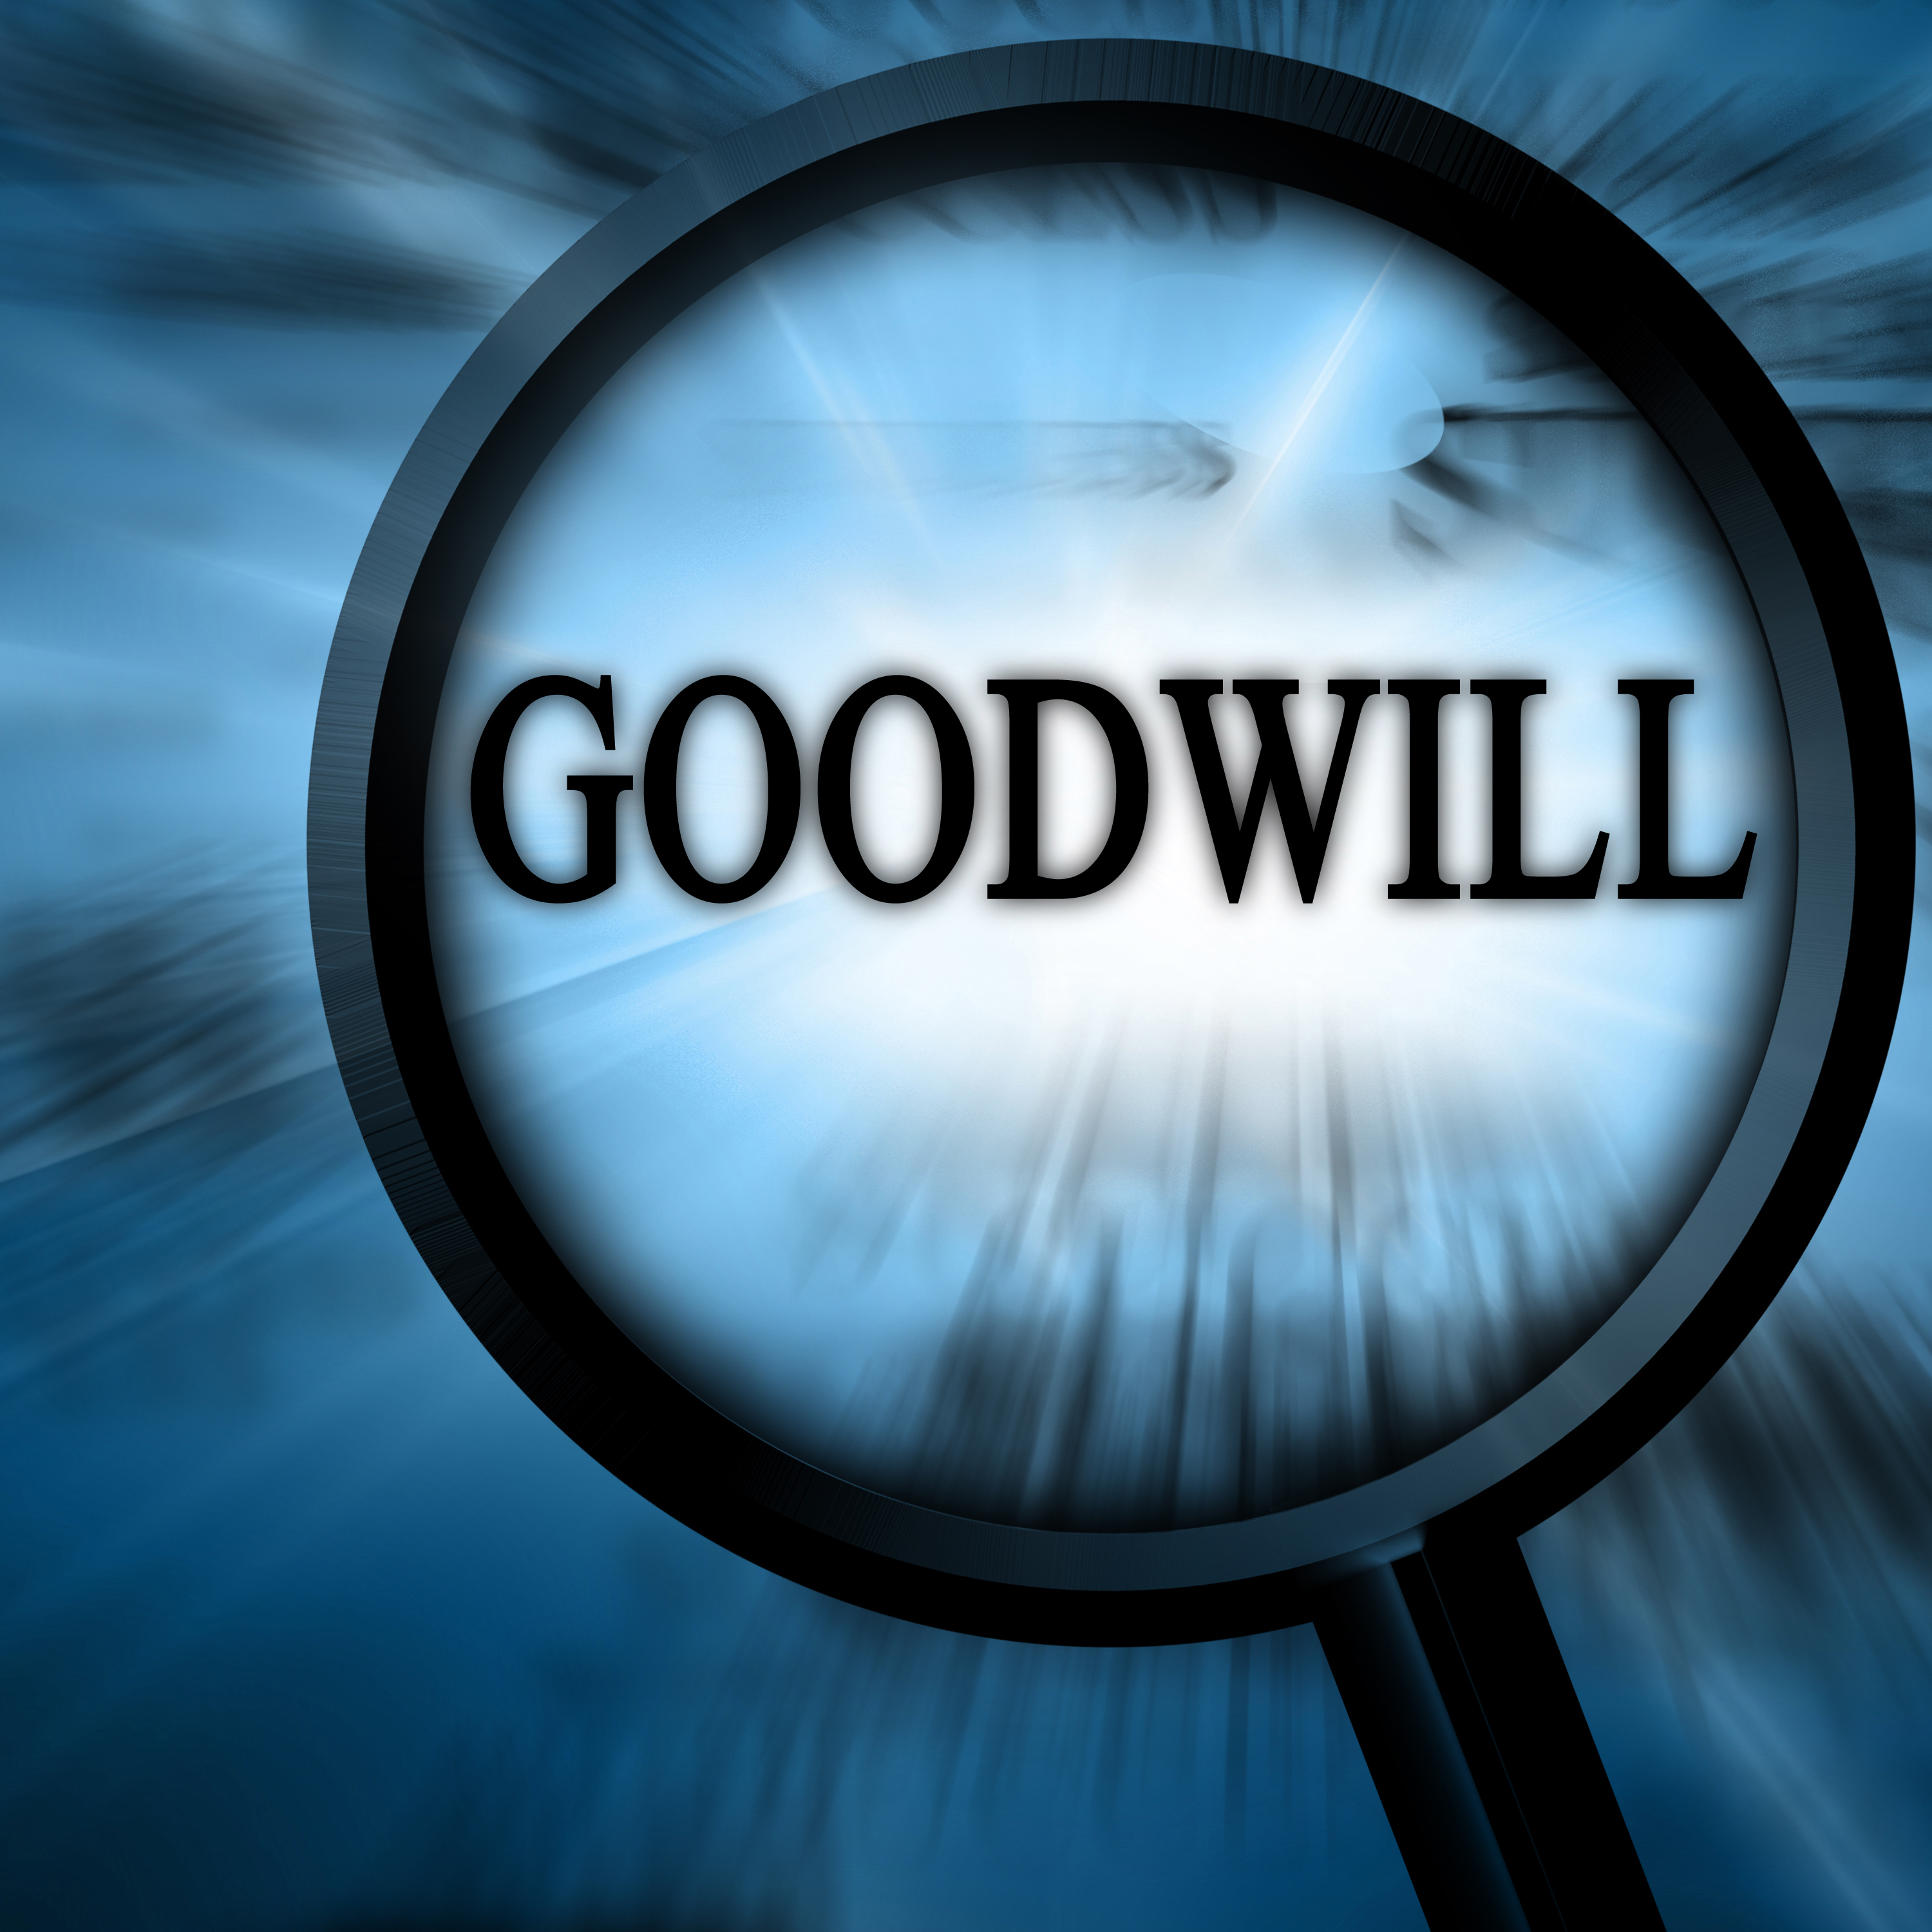 27/05/2021· cost accounting is the reporting and analysis of a company's cost structure. FASB Looks to Cut Goodwill Valuation Costs